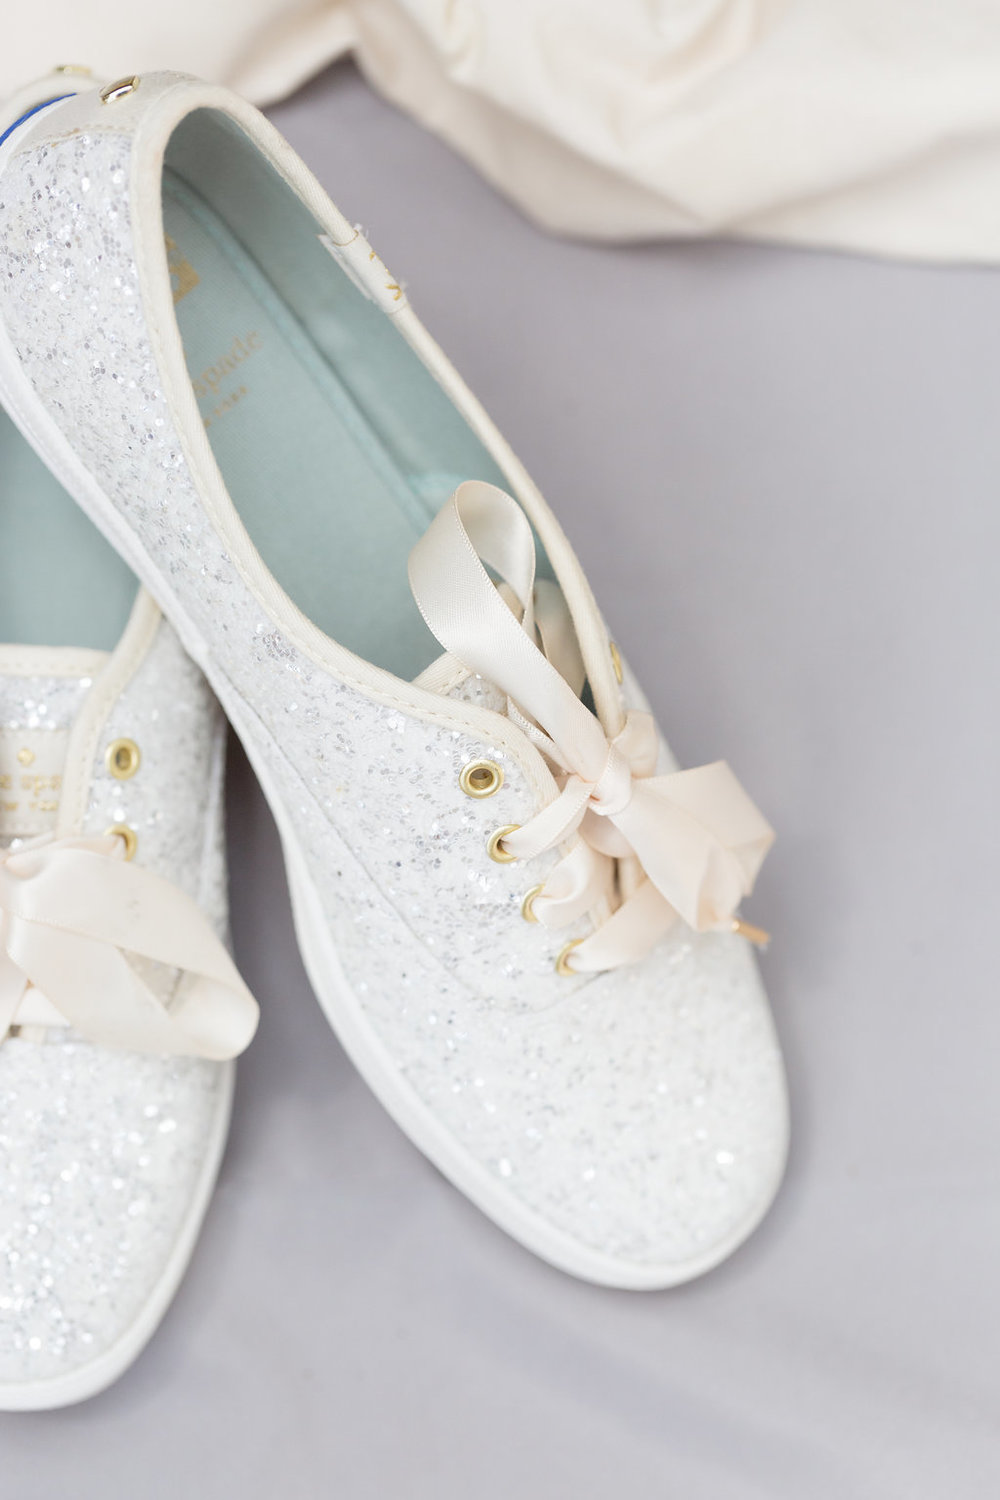 Flat White Bridal Tennis Shoes - Musgrove Plantation Georgia Wedding Venue